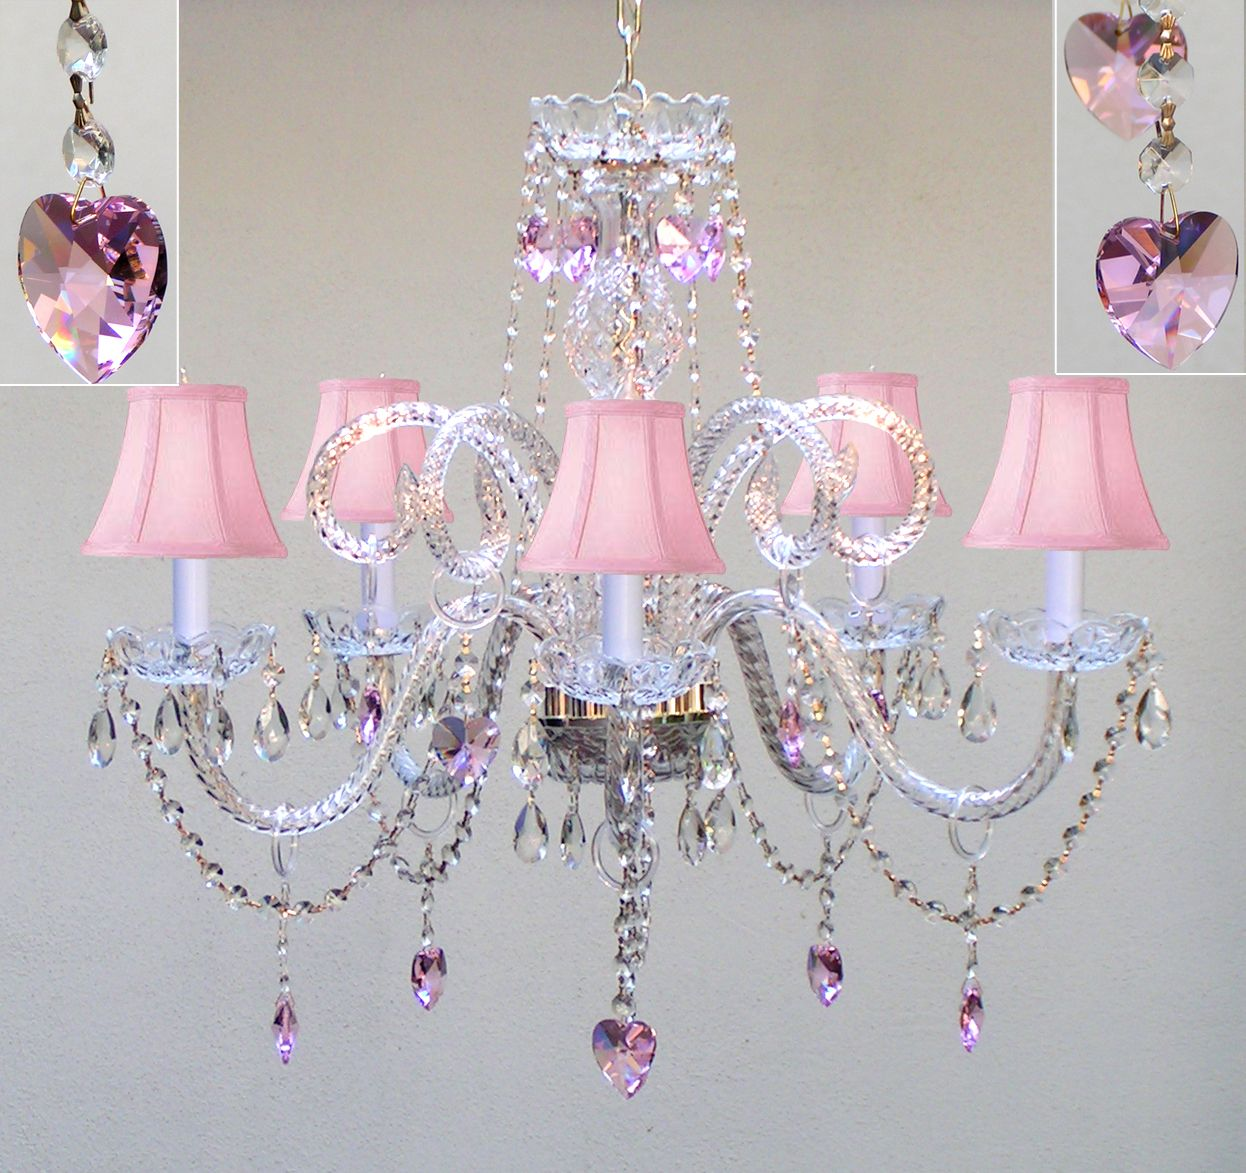 For a little girls room a46 sc3875pinkhearts chandeliers for a little girls room a46 sc3875pinkhearts chandeliers arubaitofo Choice Image